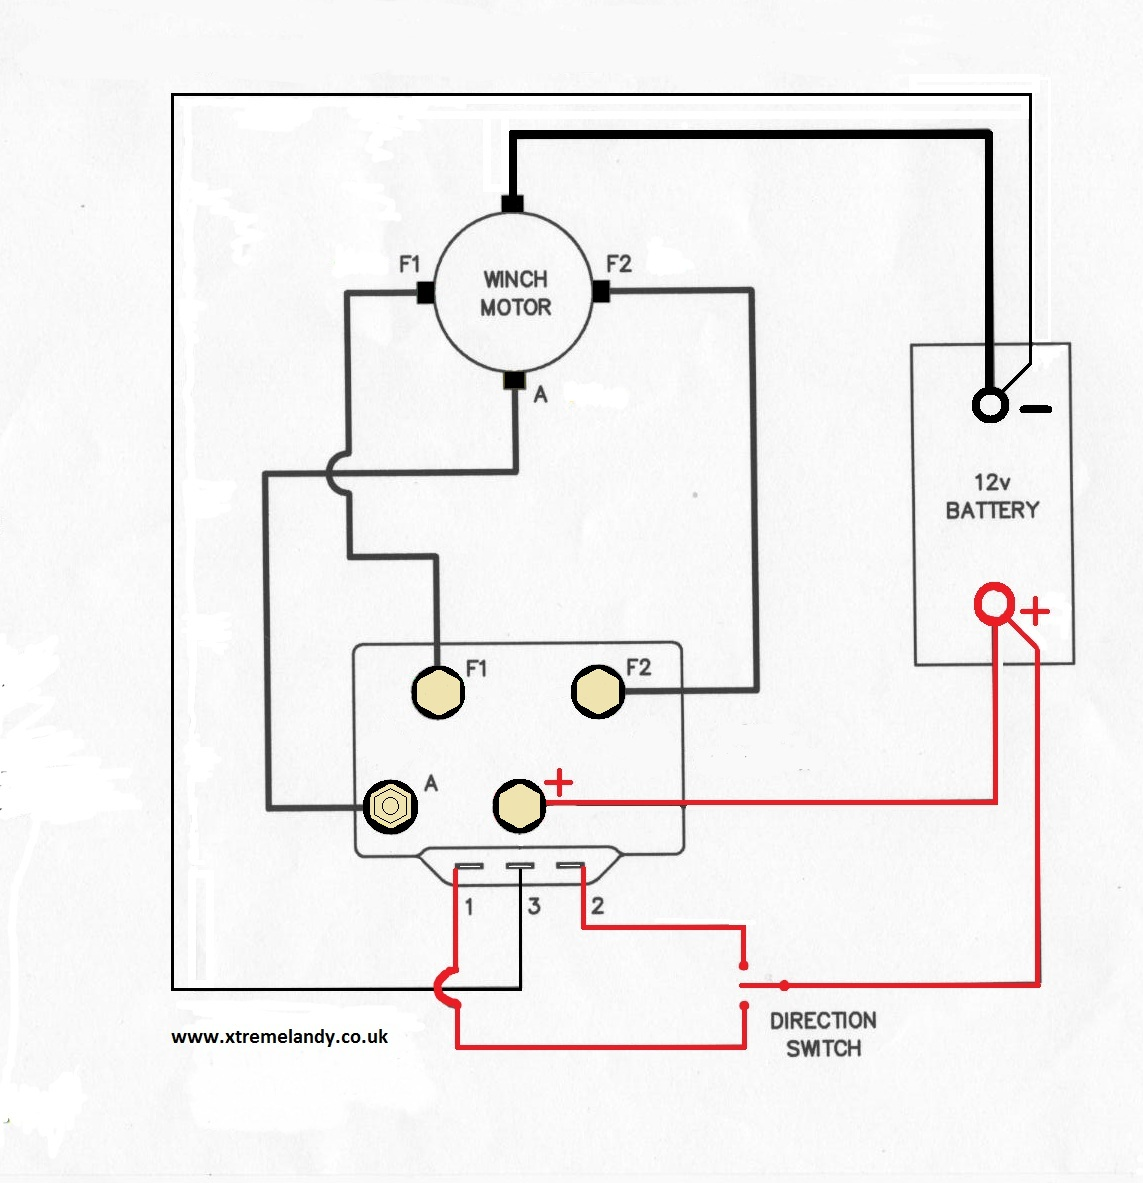 Champion Boat Wiring Diagram - Schematics Wiring Diagram